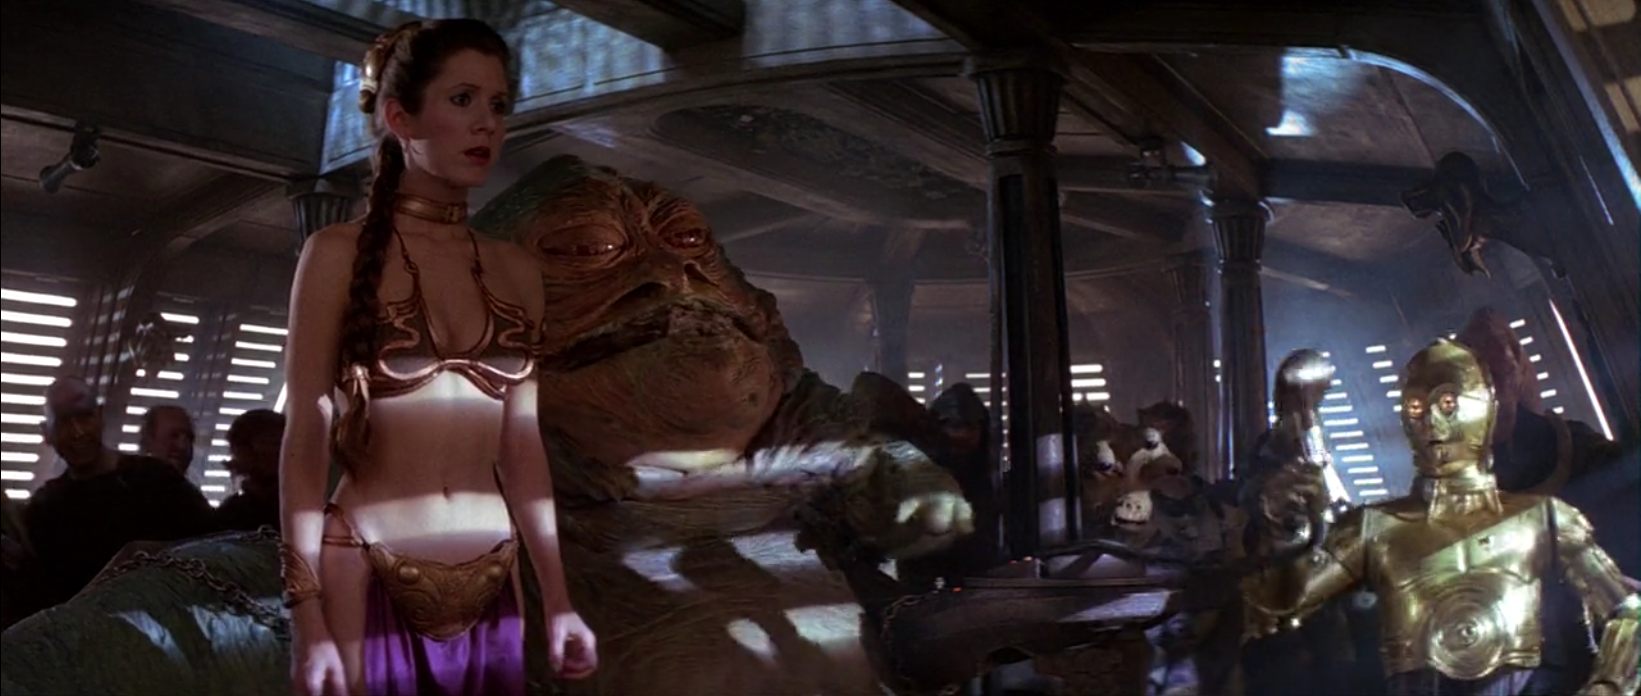 Carrie Fisher as Princess Leia in a metal bikini  - George Lucas sells LucasFilm for 4 Billion!